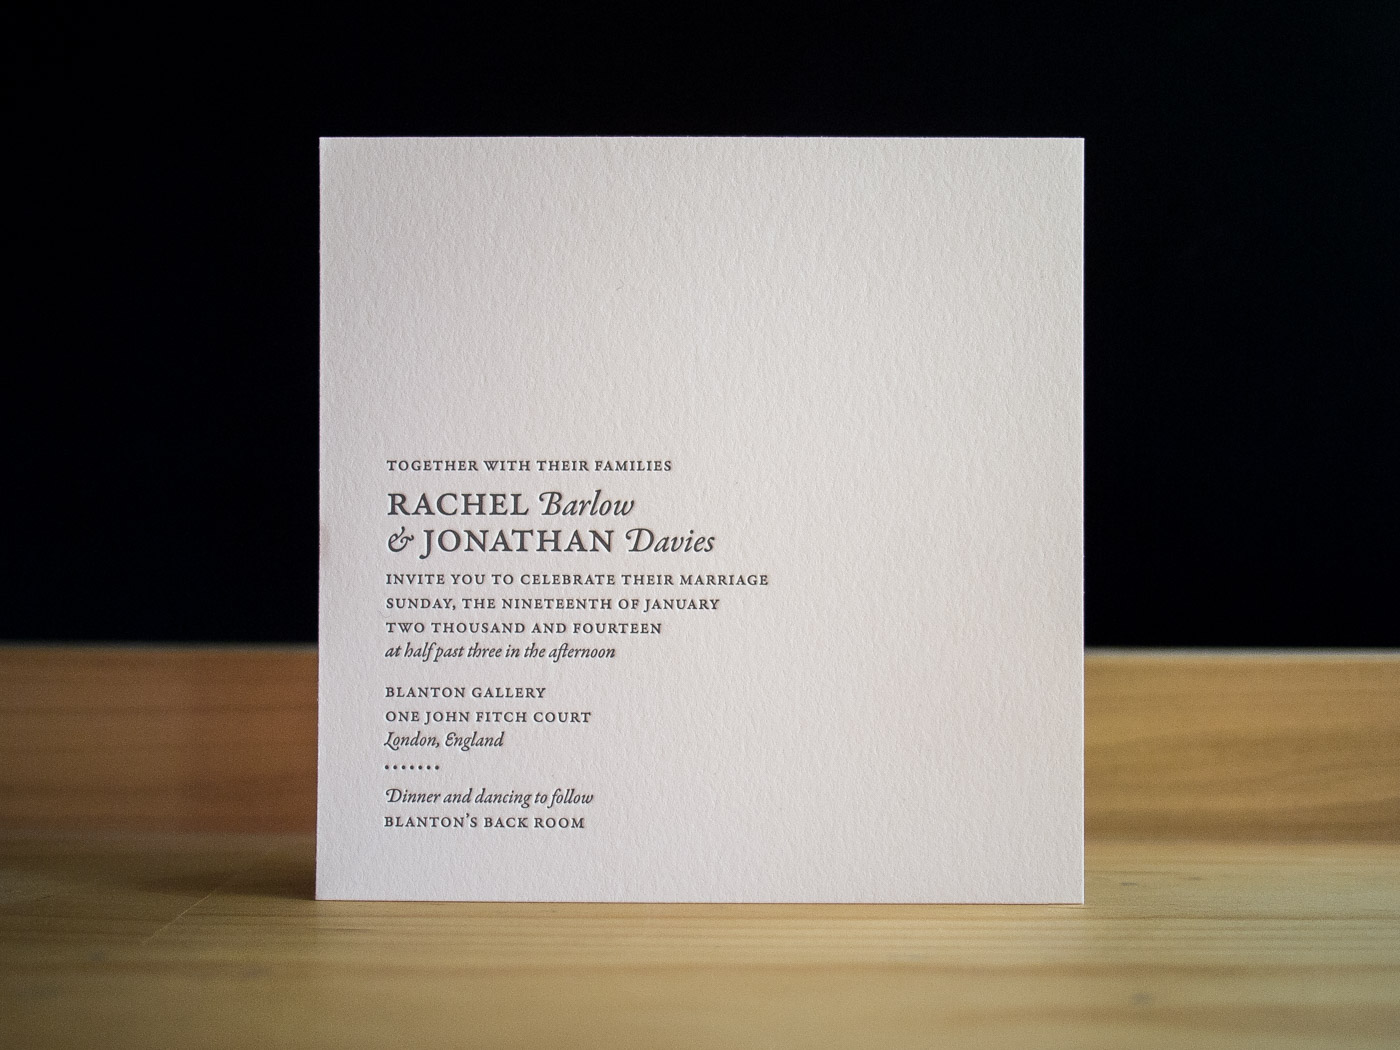 London invitation from Parklife Press